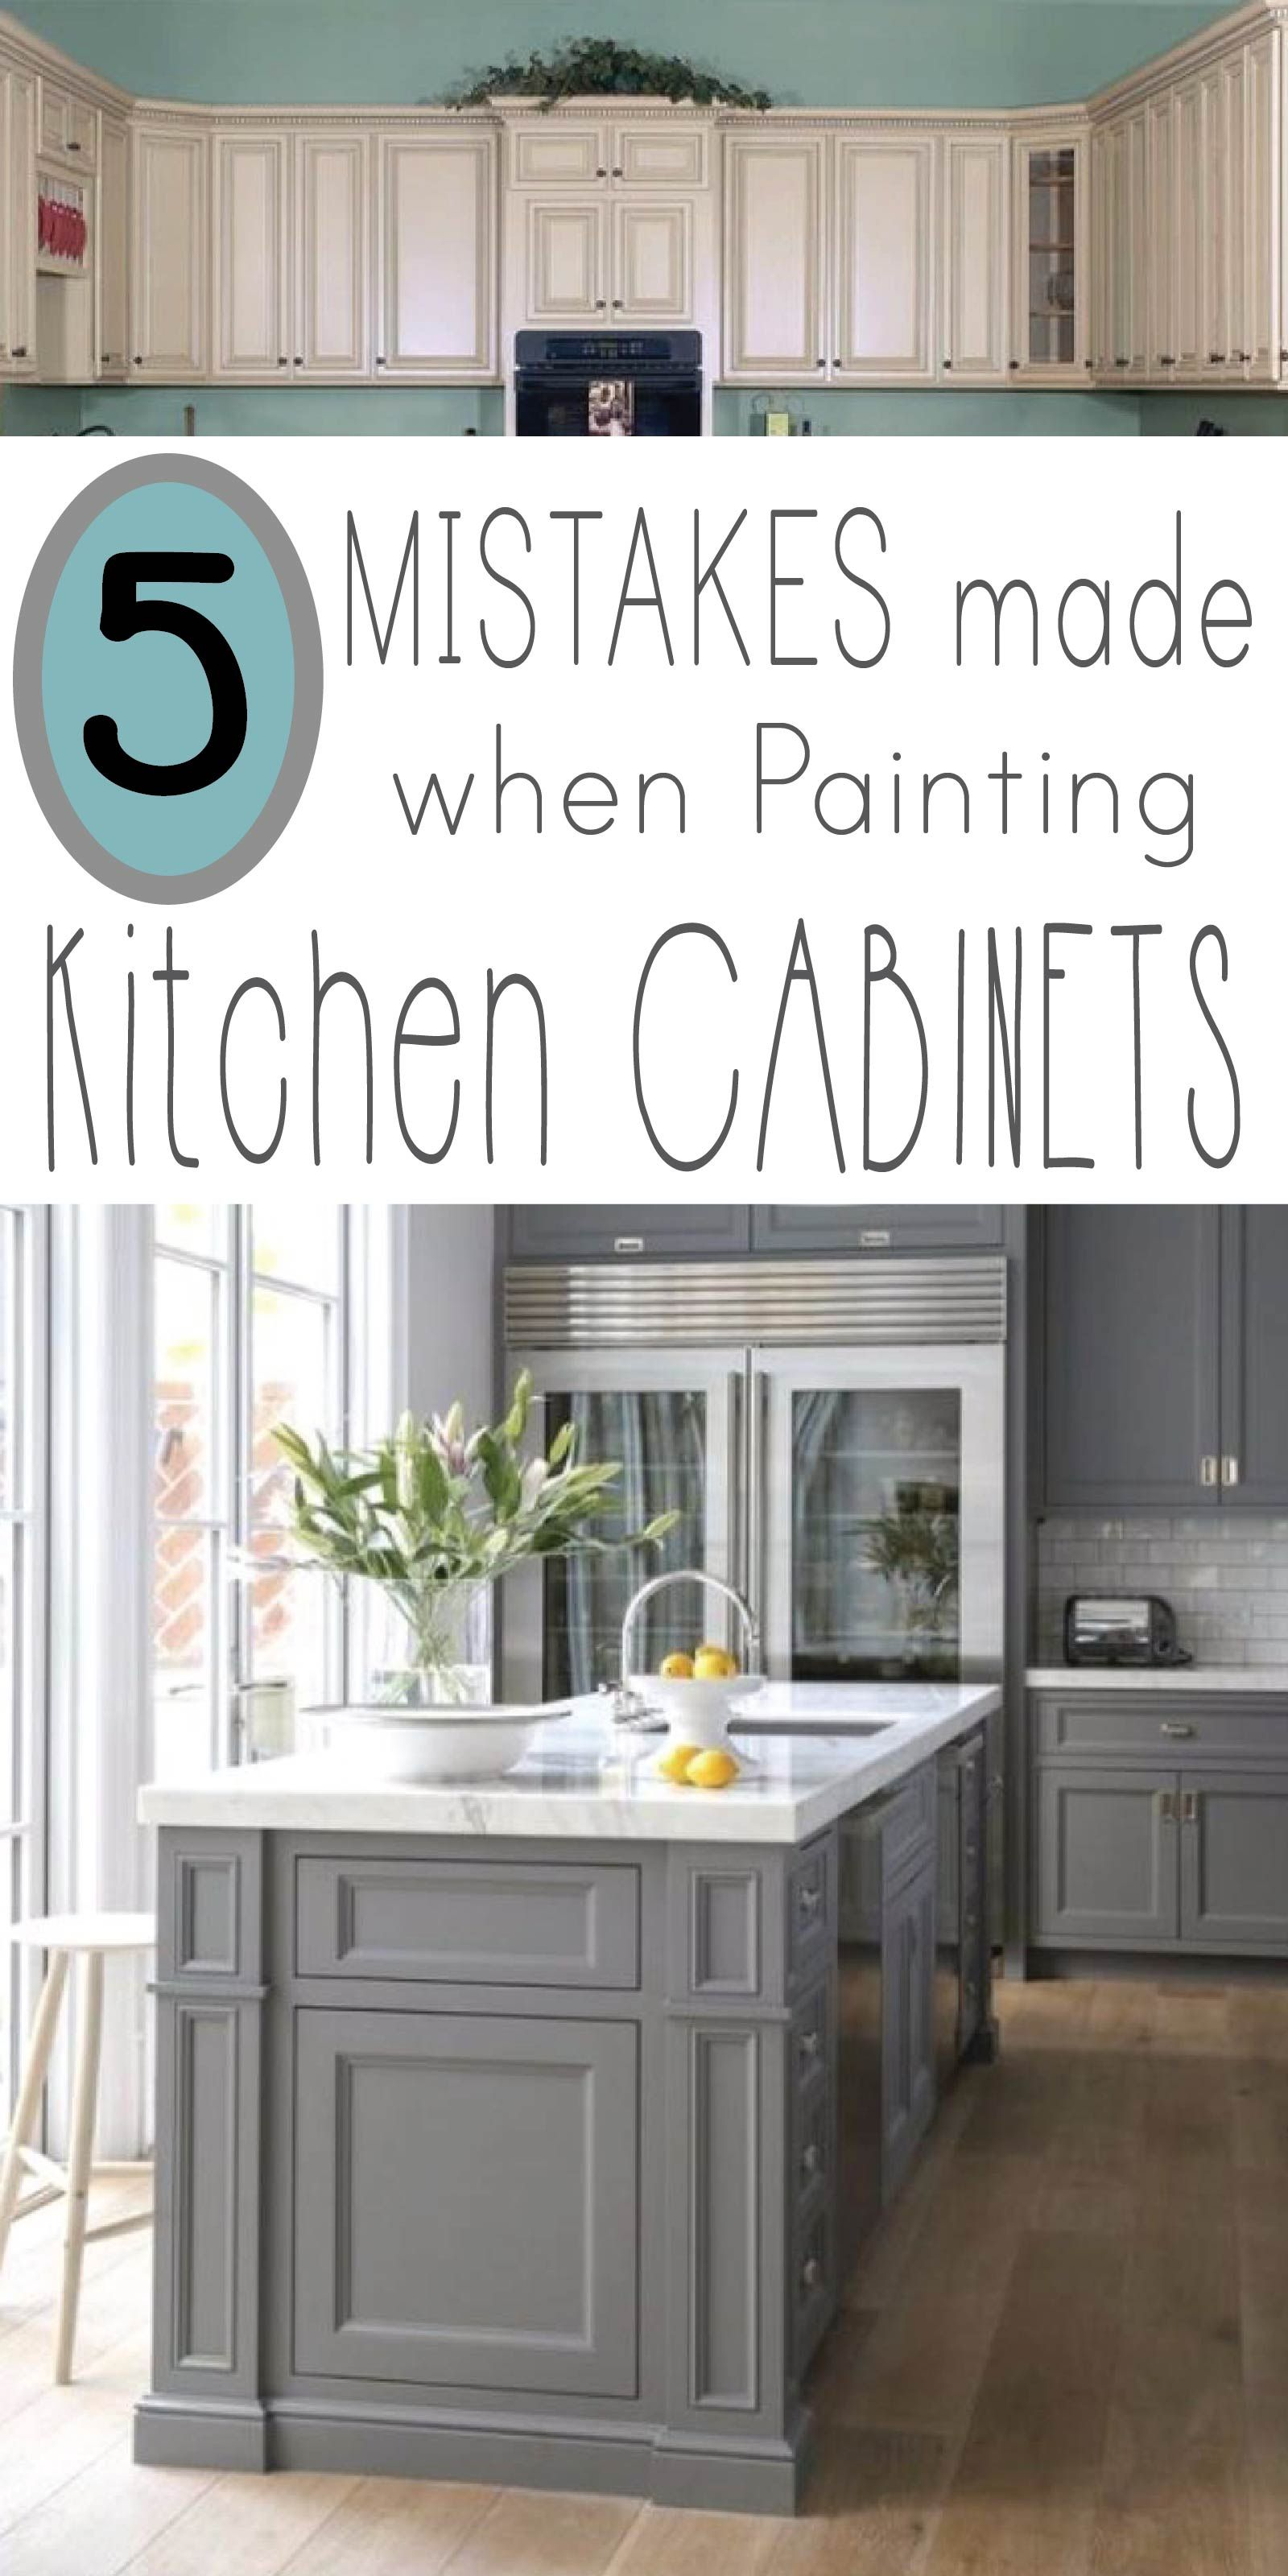 5 Mistakes People Make When Painting Kitchen Cabinets Painted Furniture Ideas Painting Kitchen Cabinets Kitchen Redo Kitchen Cabinets